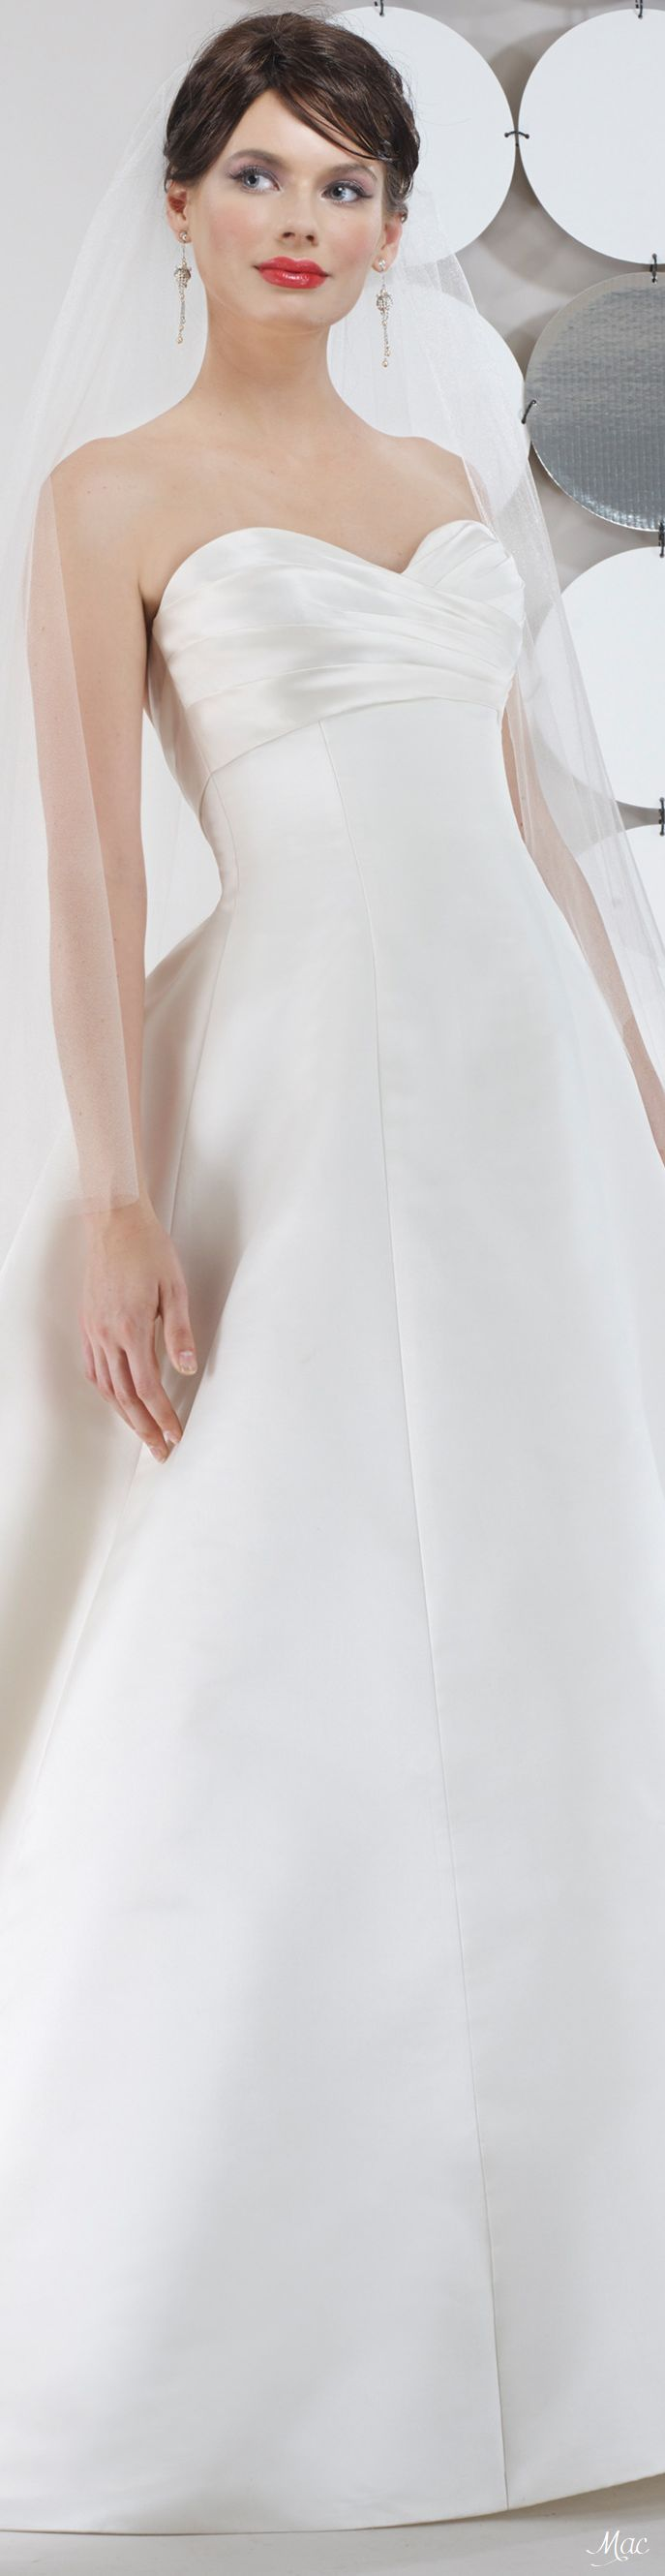 Fall 2018 Bridal Steven Birnbaum